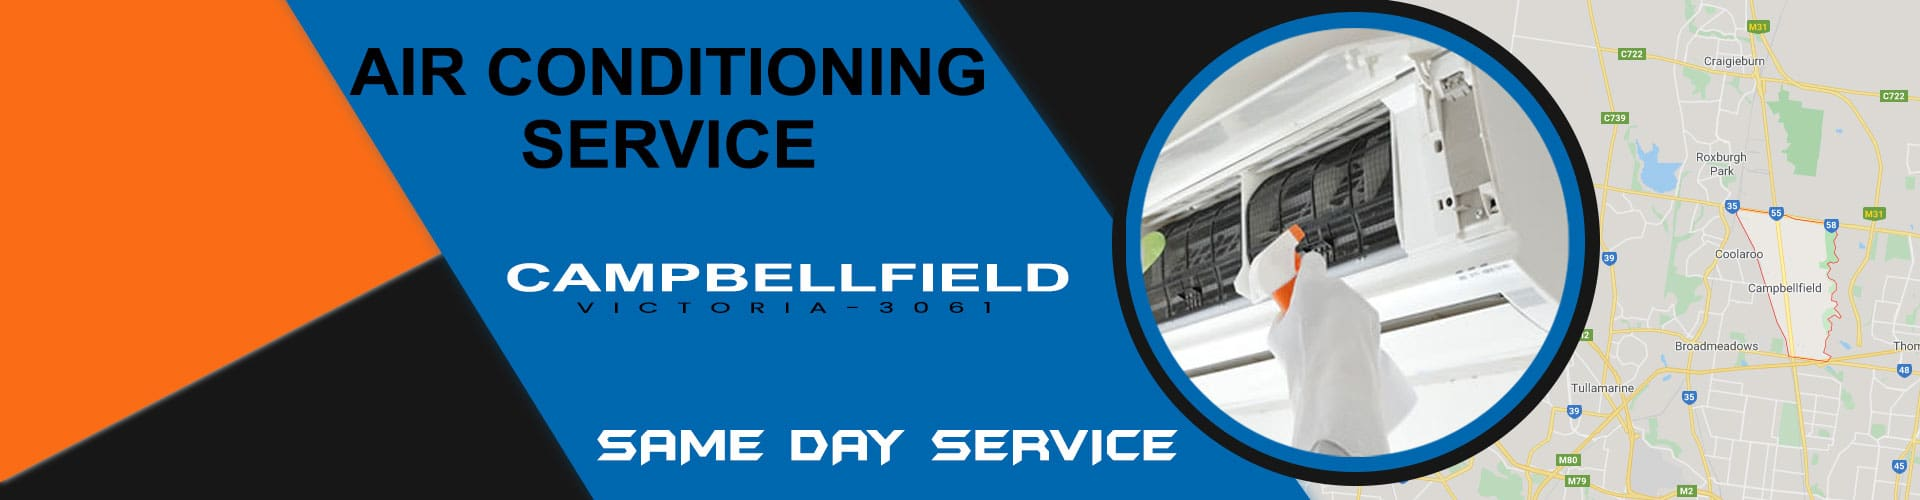 Air Conditioning Campbellfield